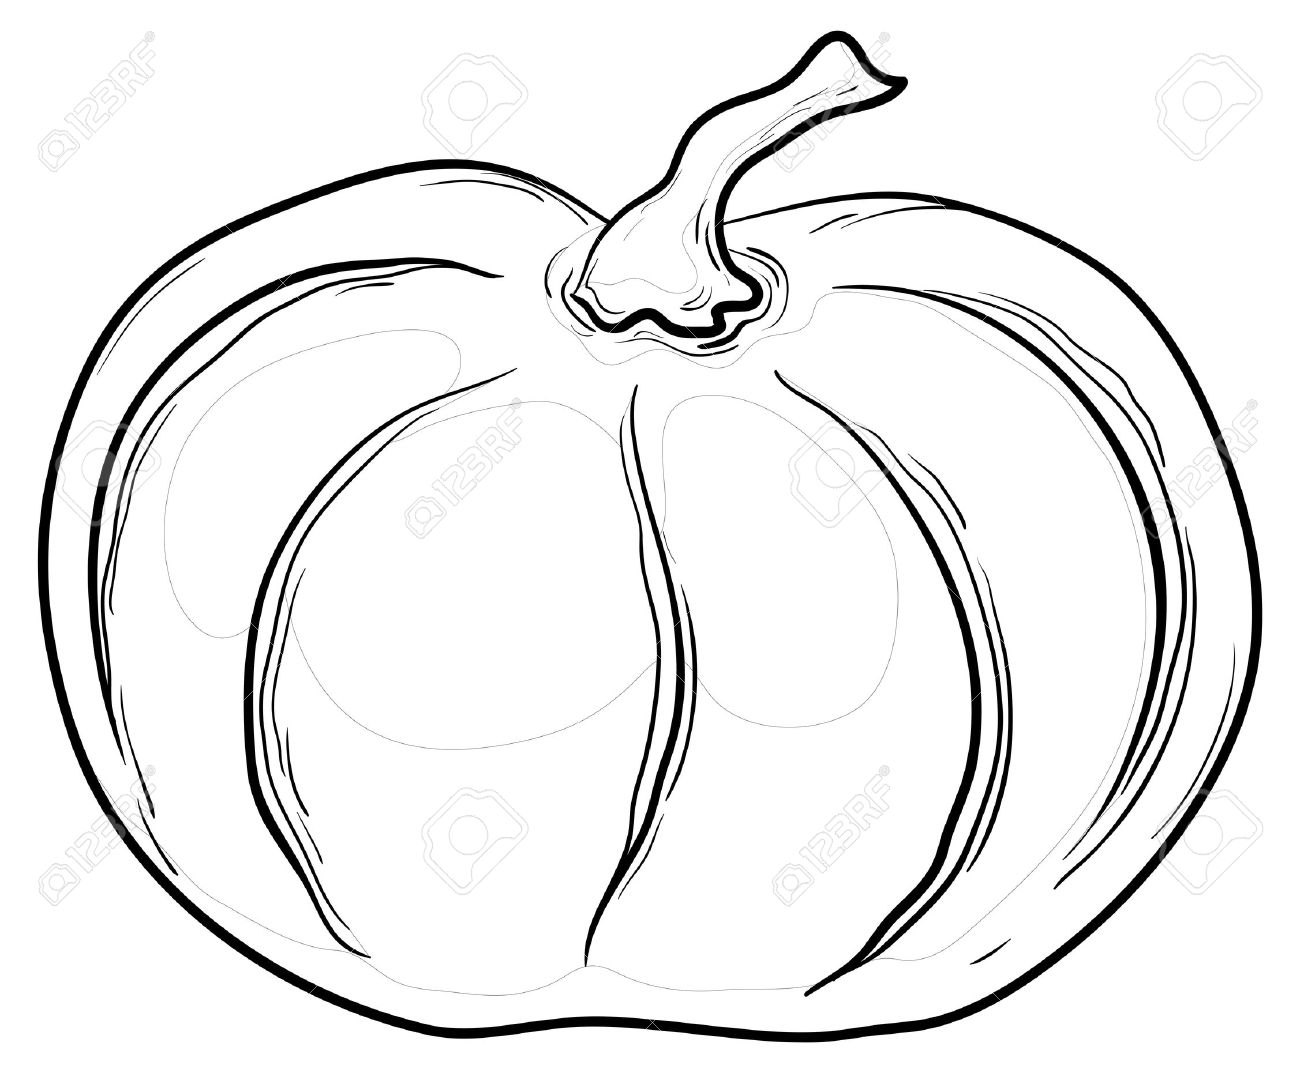 vegetable pumpkin vector monochrome graphic contours on white rh 123rf com Halloween Pumpkin Vector Pumpkin Clip Art Vector